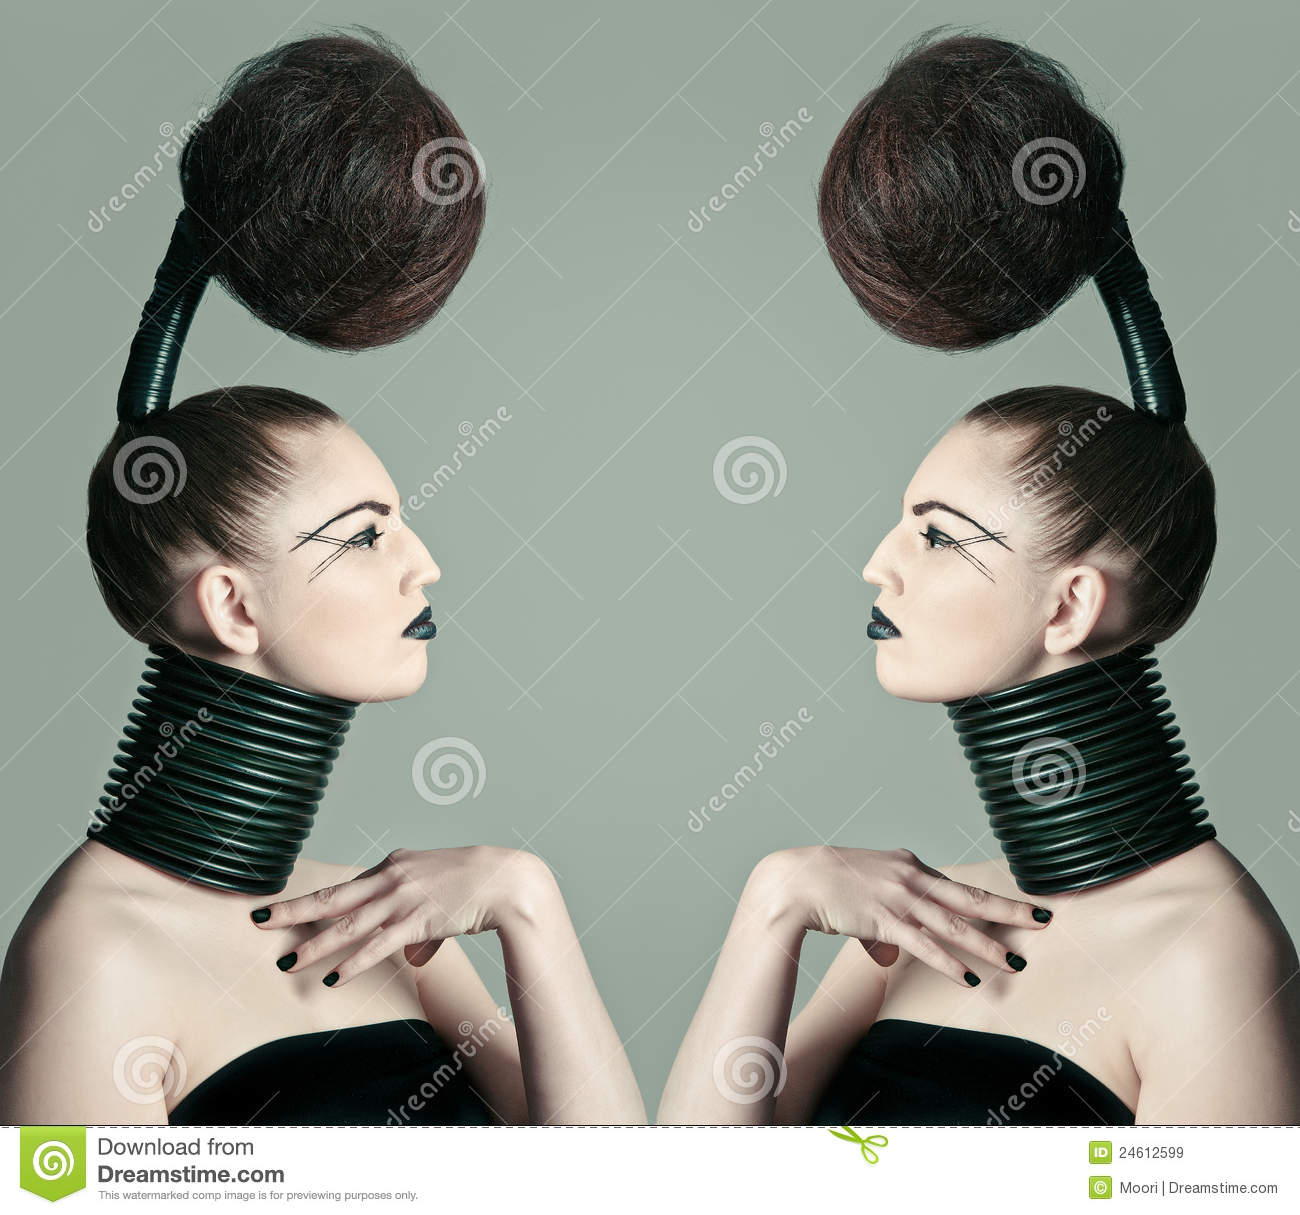 Avantgarde Stock Photos, Images, & Pictures.